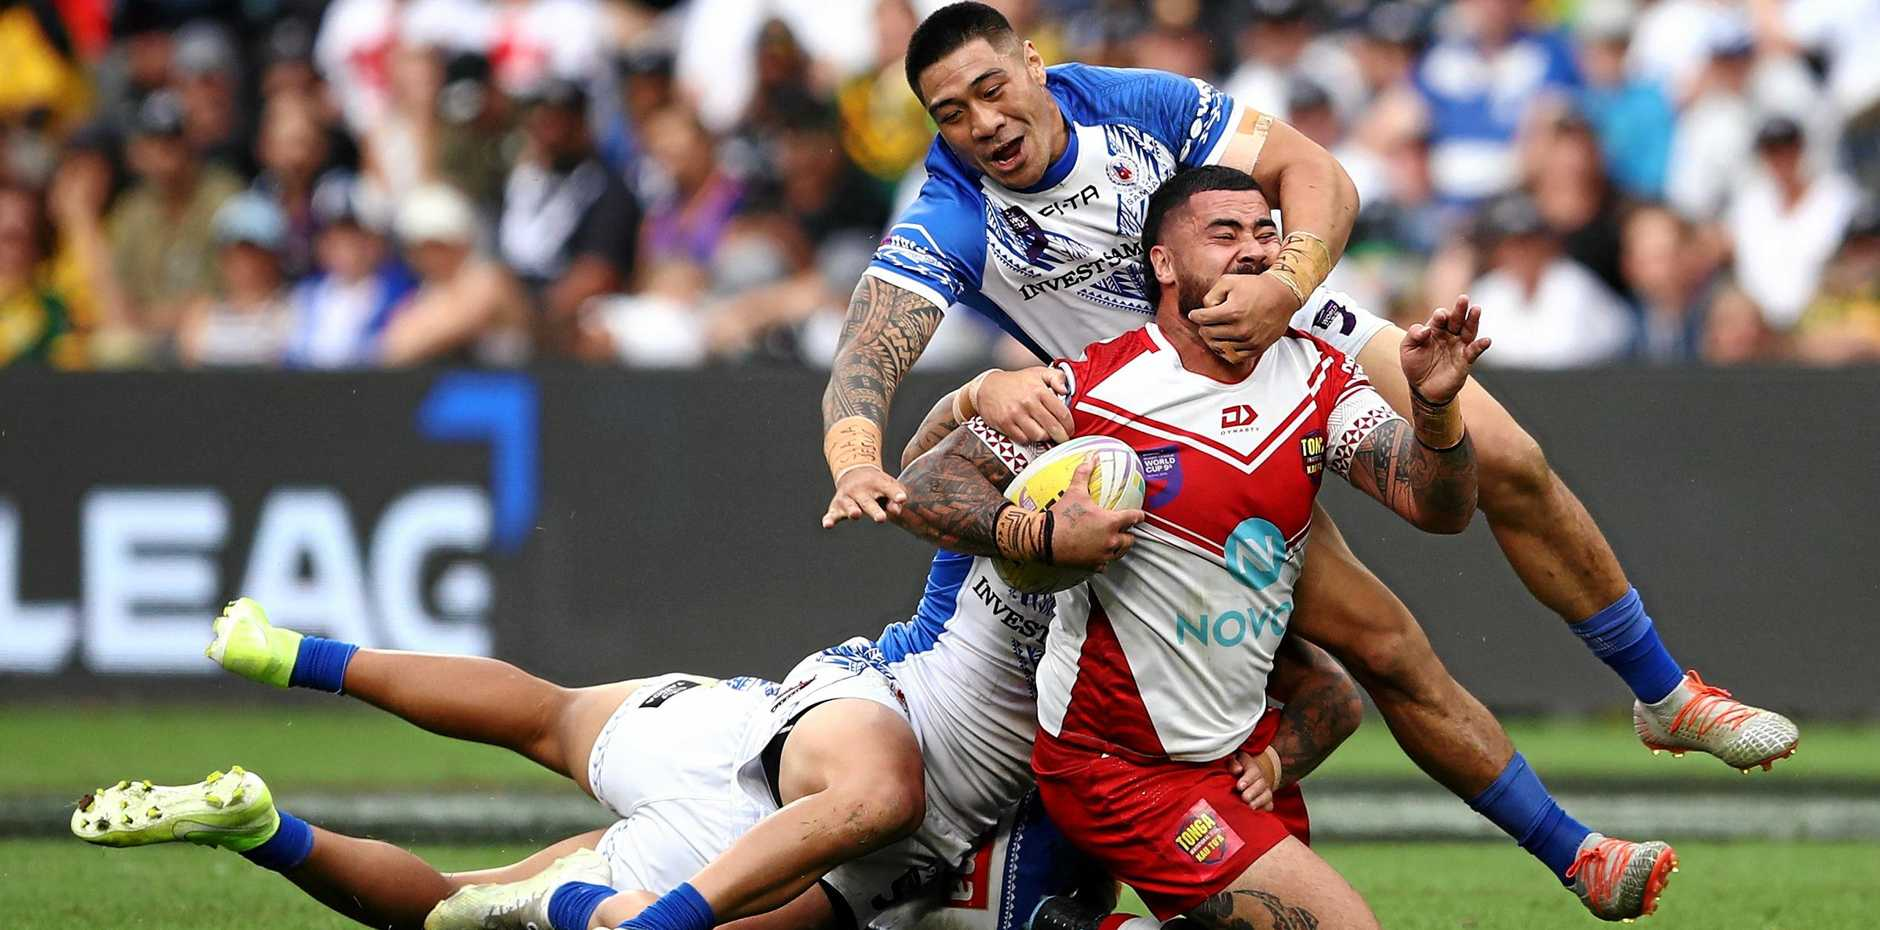 Andrew Fifita of Tonga is tackled by the Samoa defence in a men's pool game during the Downer Rugby League World Cup 9s in Sydney on October 19 last year. Picture: Brendon Thorne/AAP